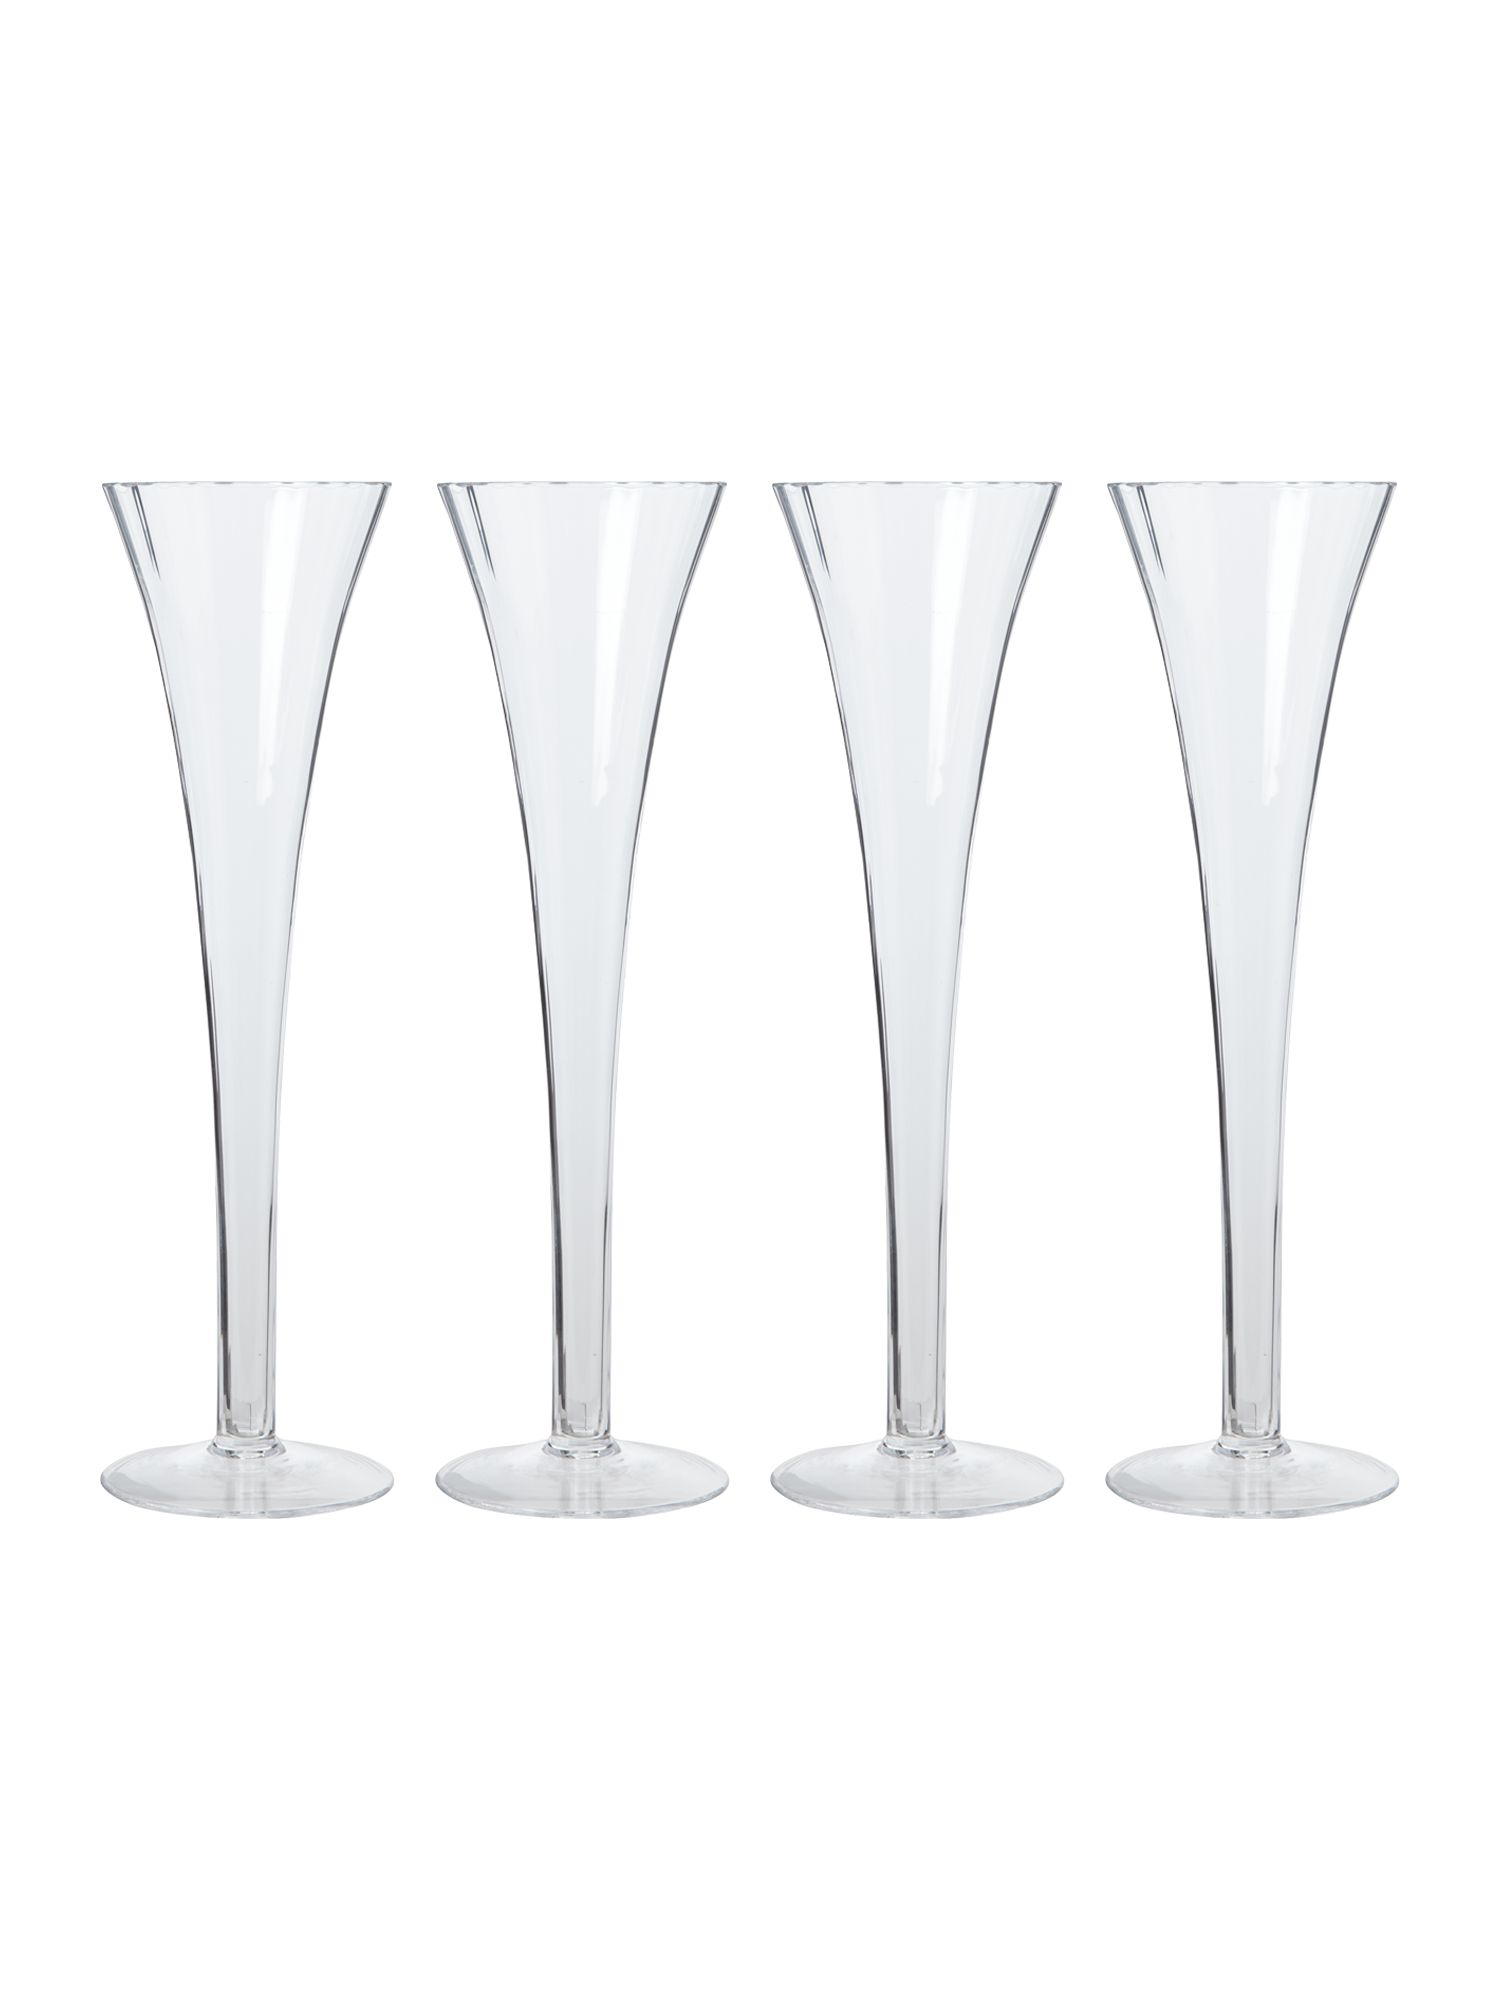 Aurelia champagne flutes, set of 4